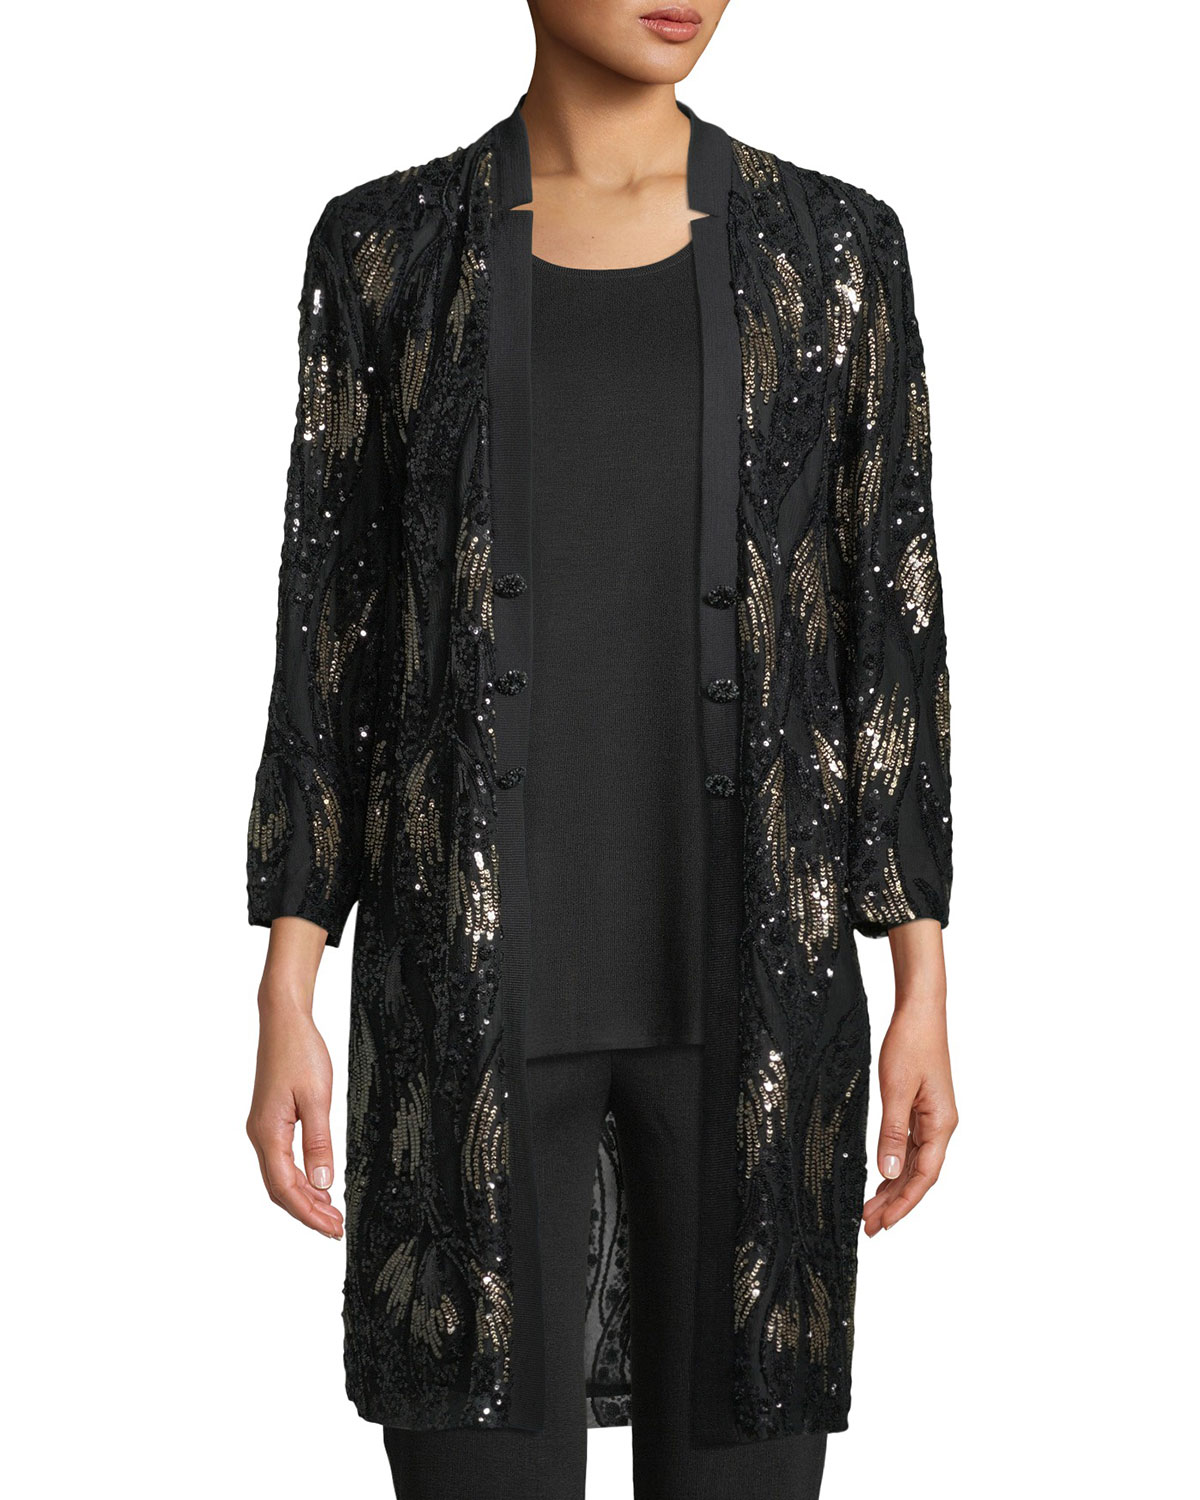 Misook Plus Size Long Sequin Mesh Duster Jacket